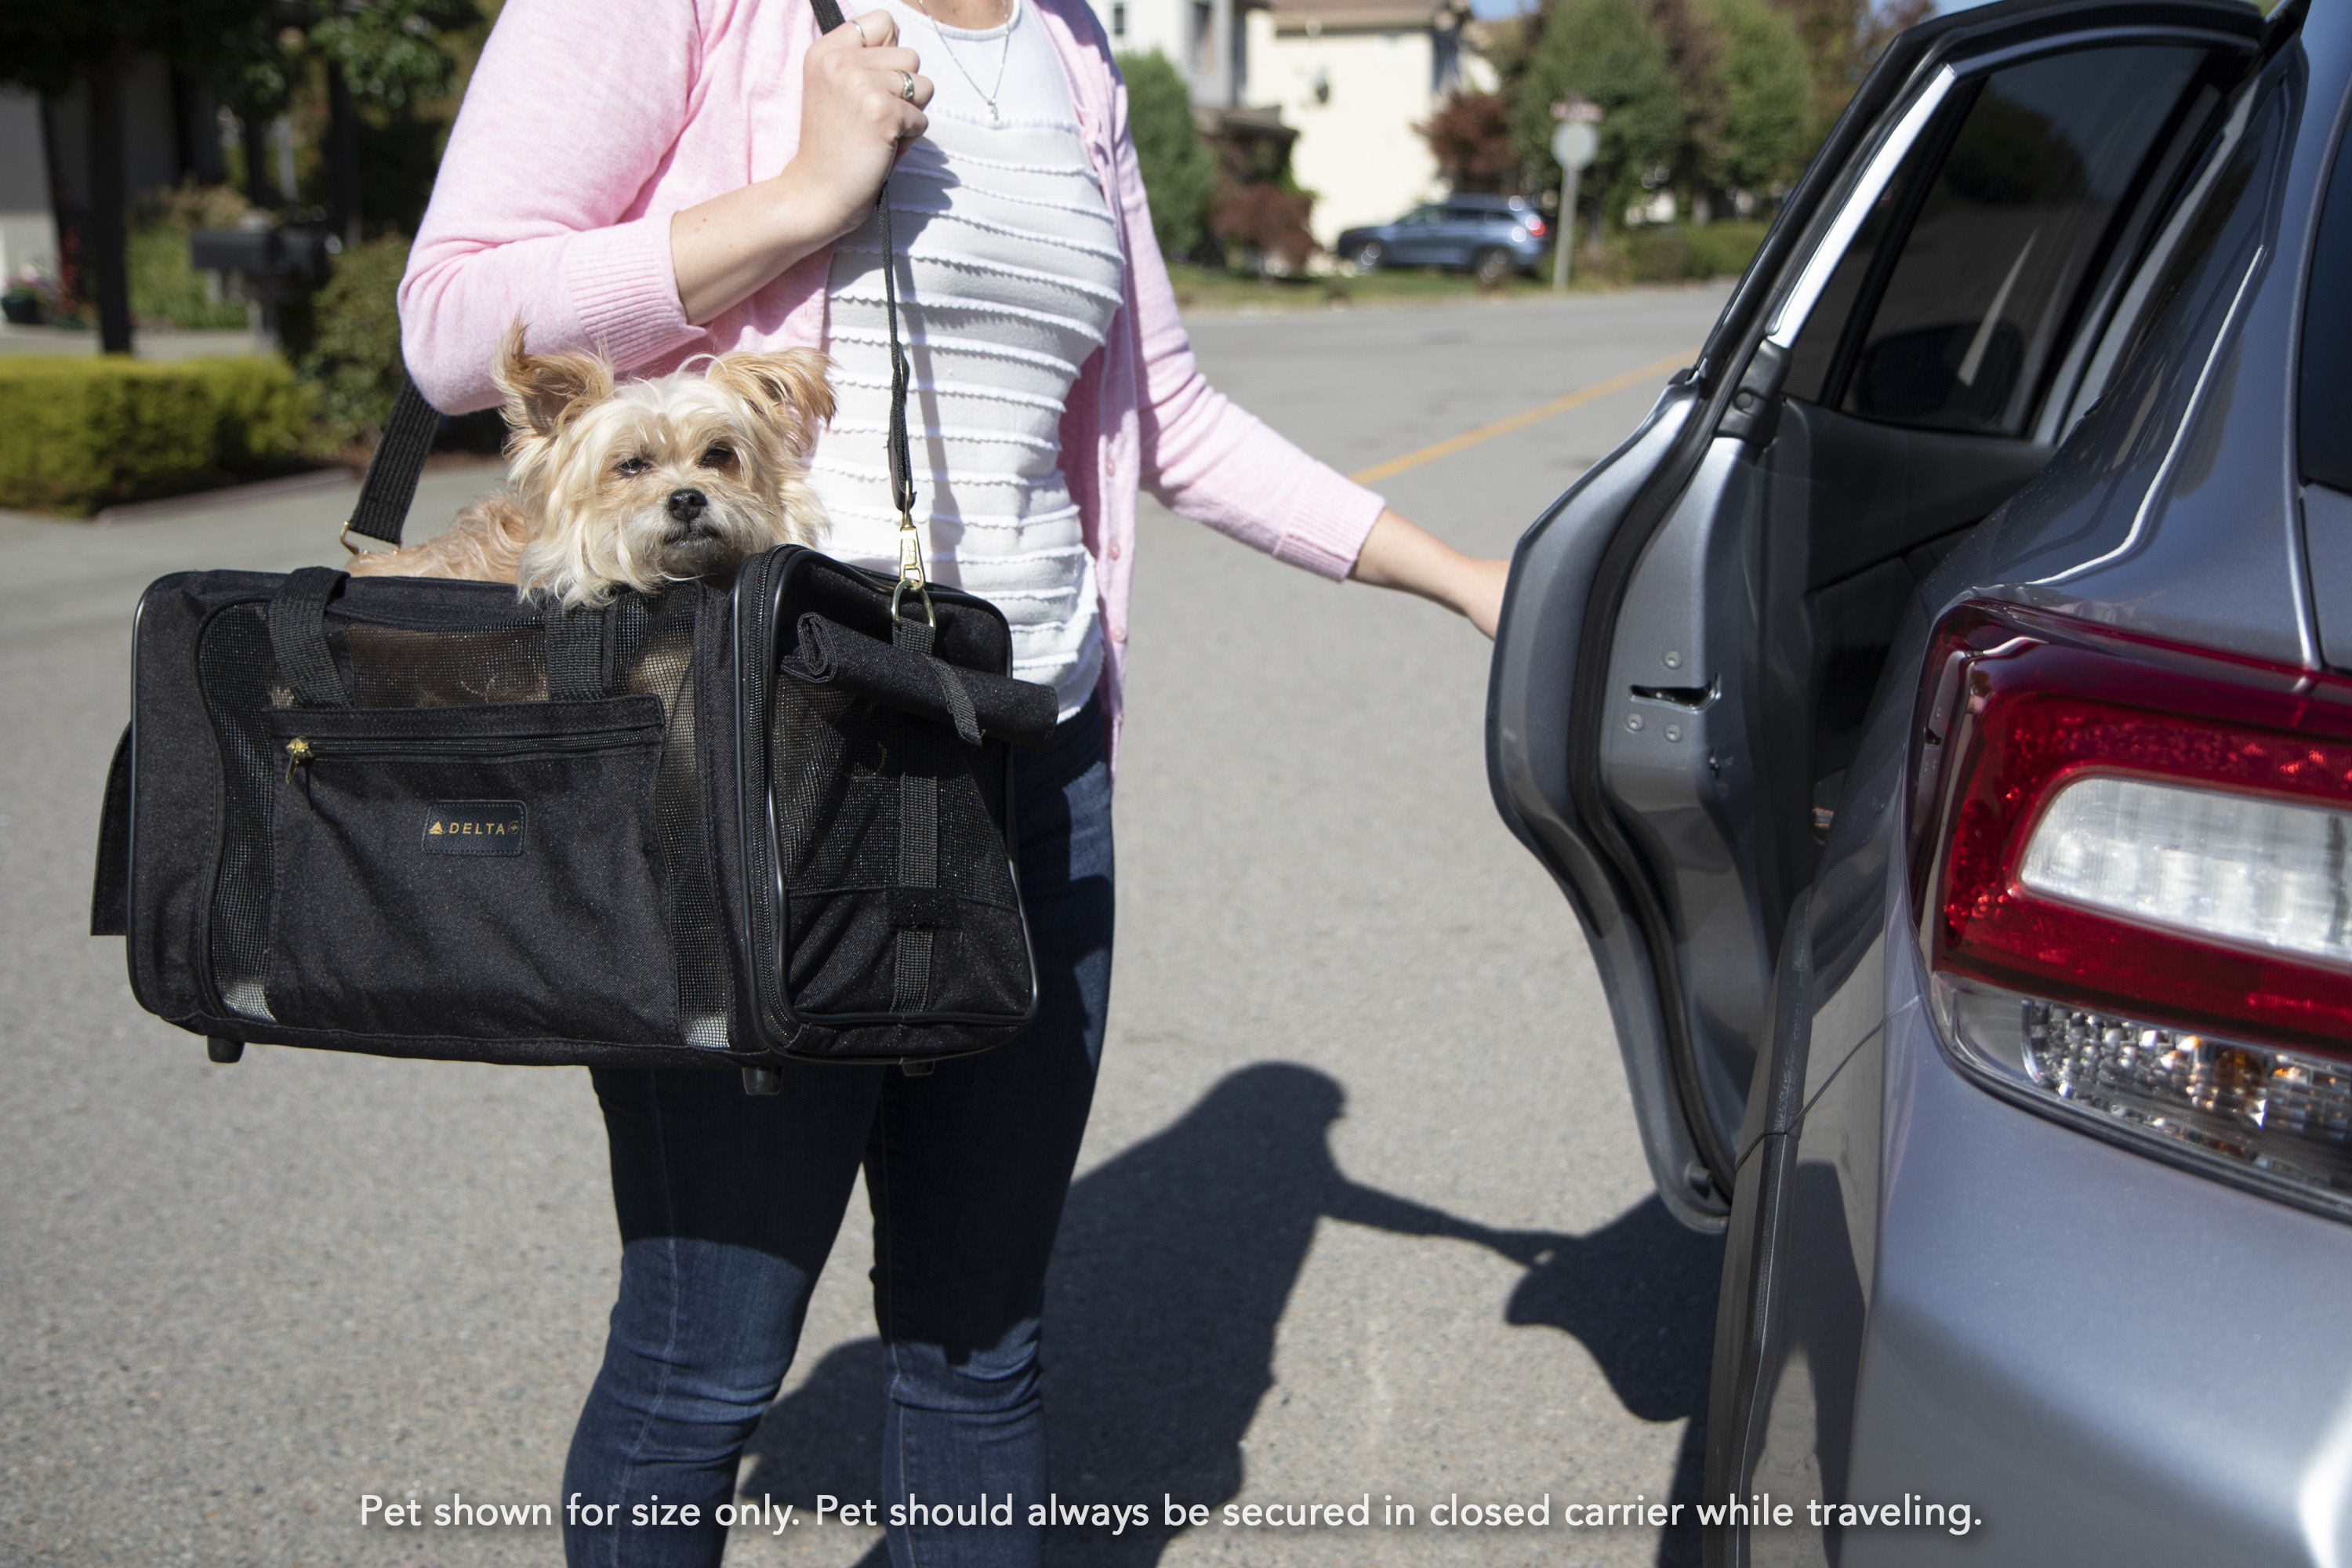 a137138a30 Sherpa® Travel Delta® Air Lines® Airline Approved Pet Carrier, Medium,  Black - Walmart.com